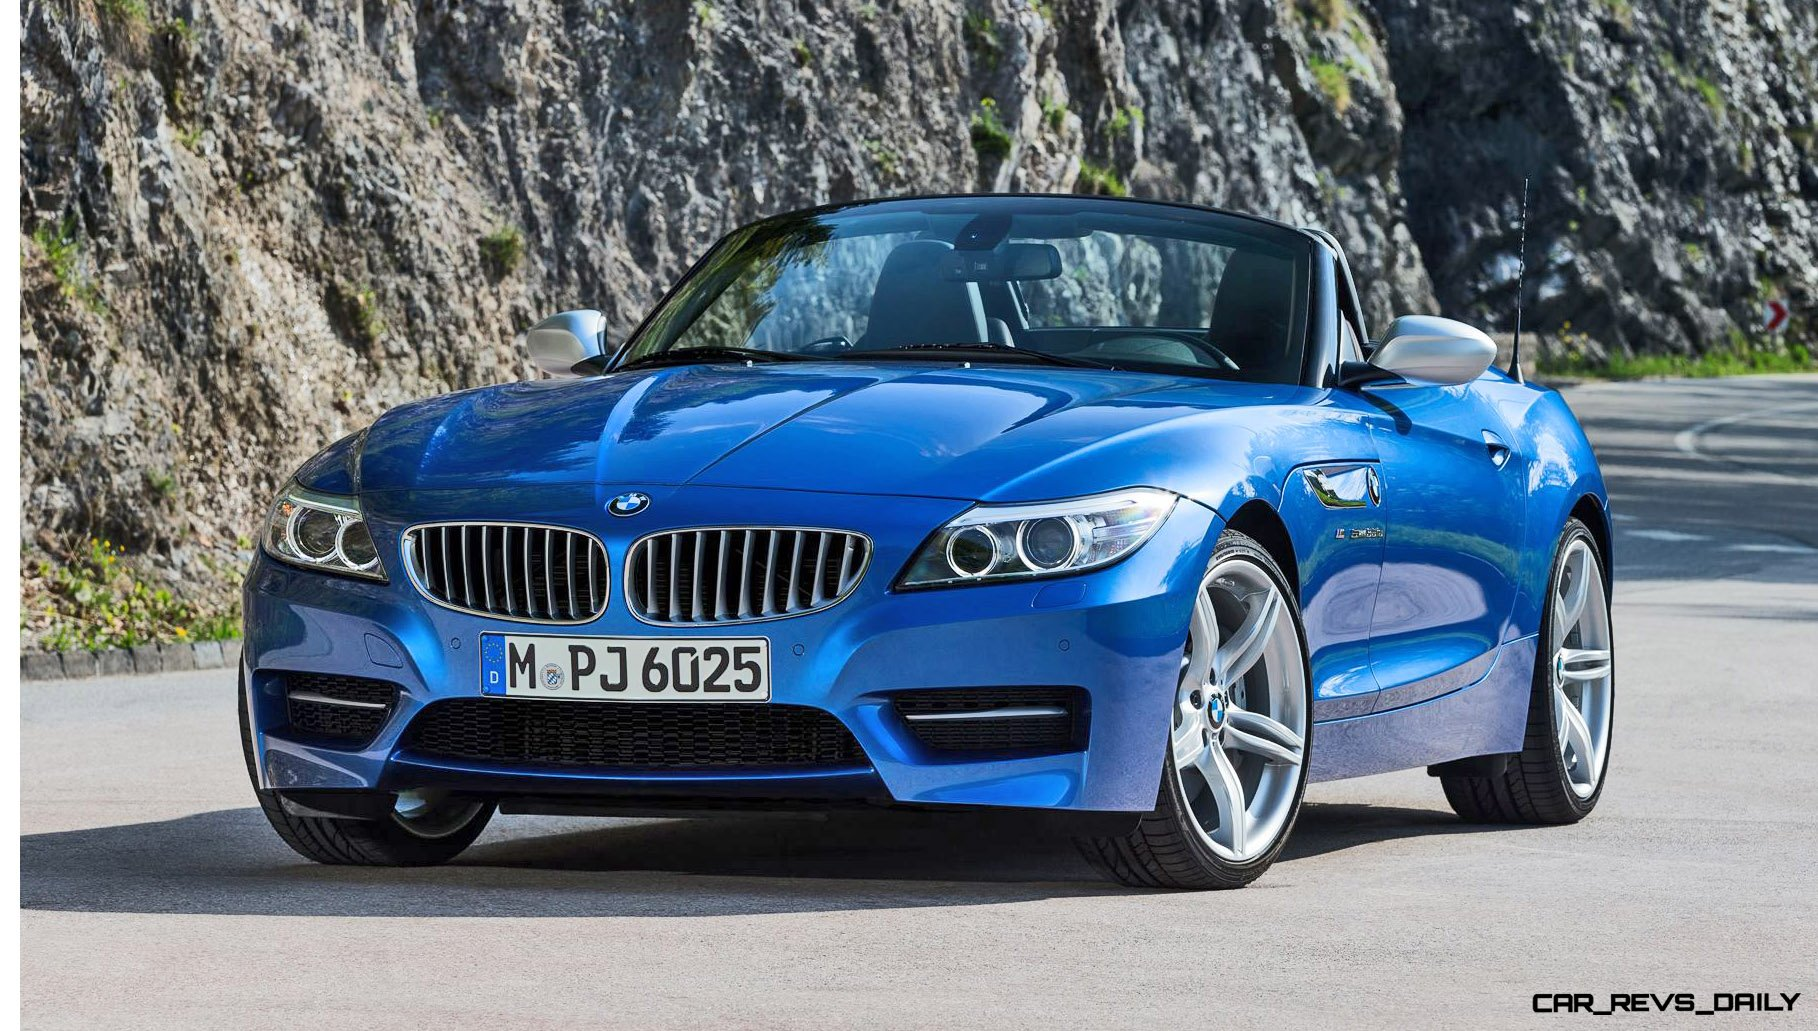 2016 bmw z4 m sport estoril blue 40 car revs. Black Bedroom Furniture Sets. Home Design Ideas